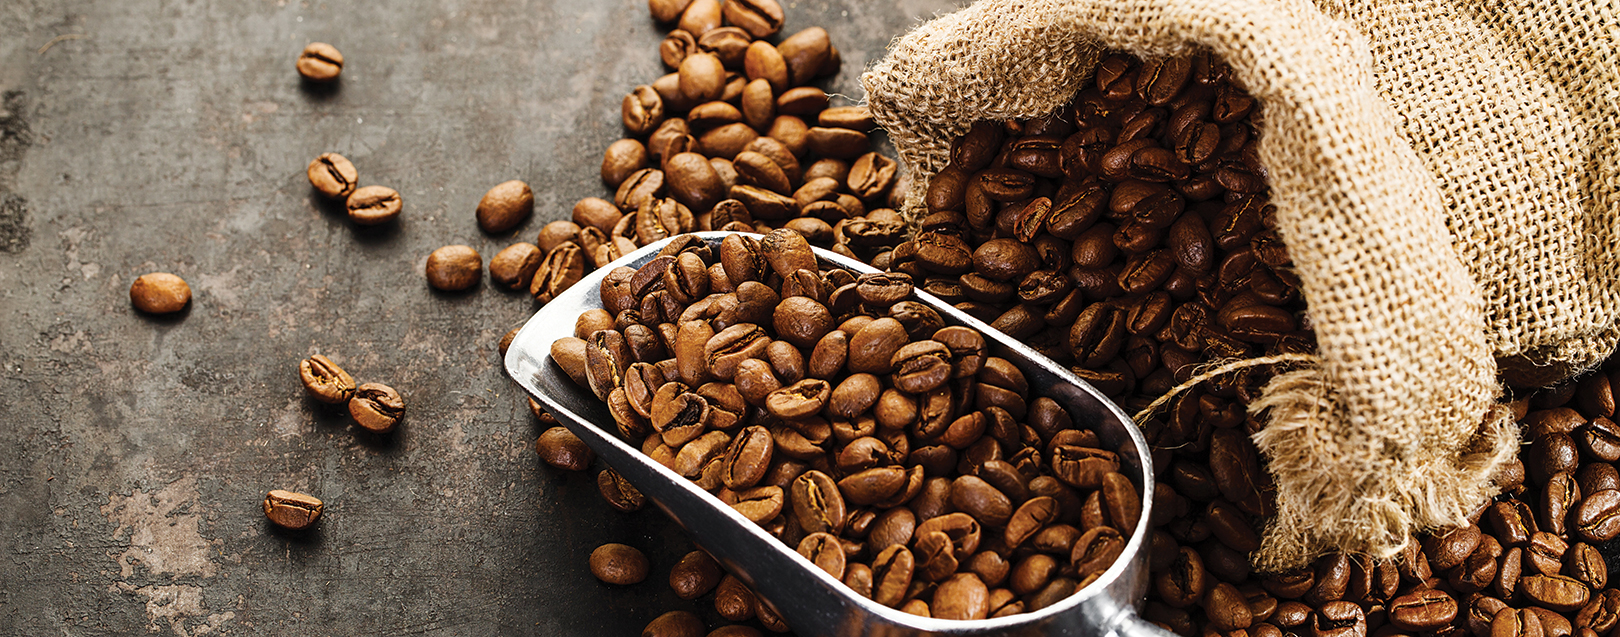 Coffee (neither roasted nor decaffeinated) - Brewing profits worldwide March 2018 issue